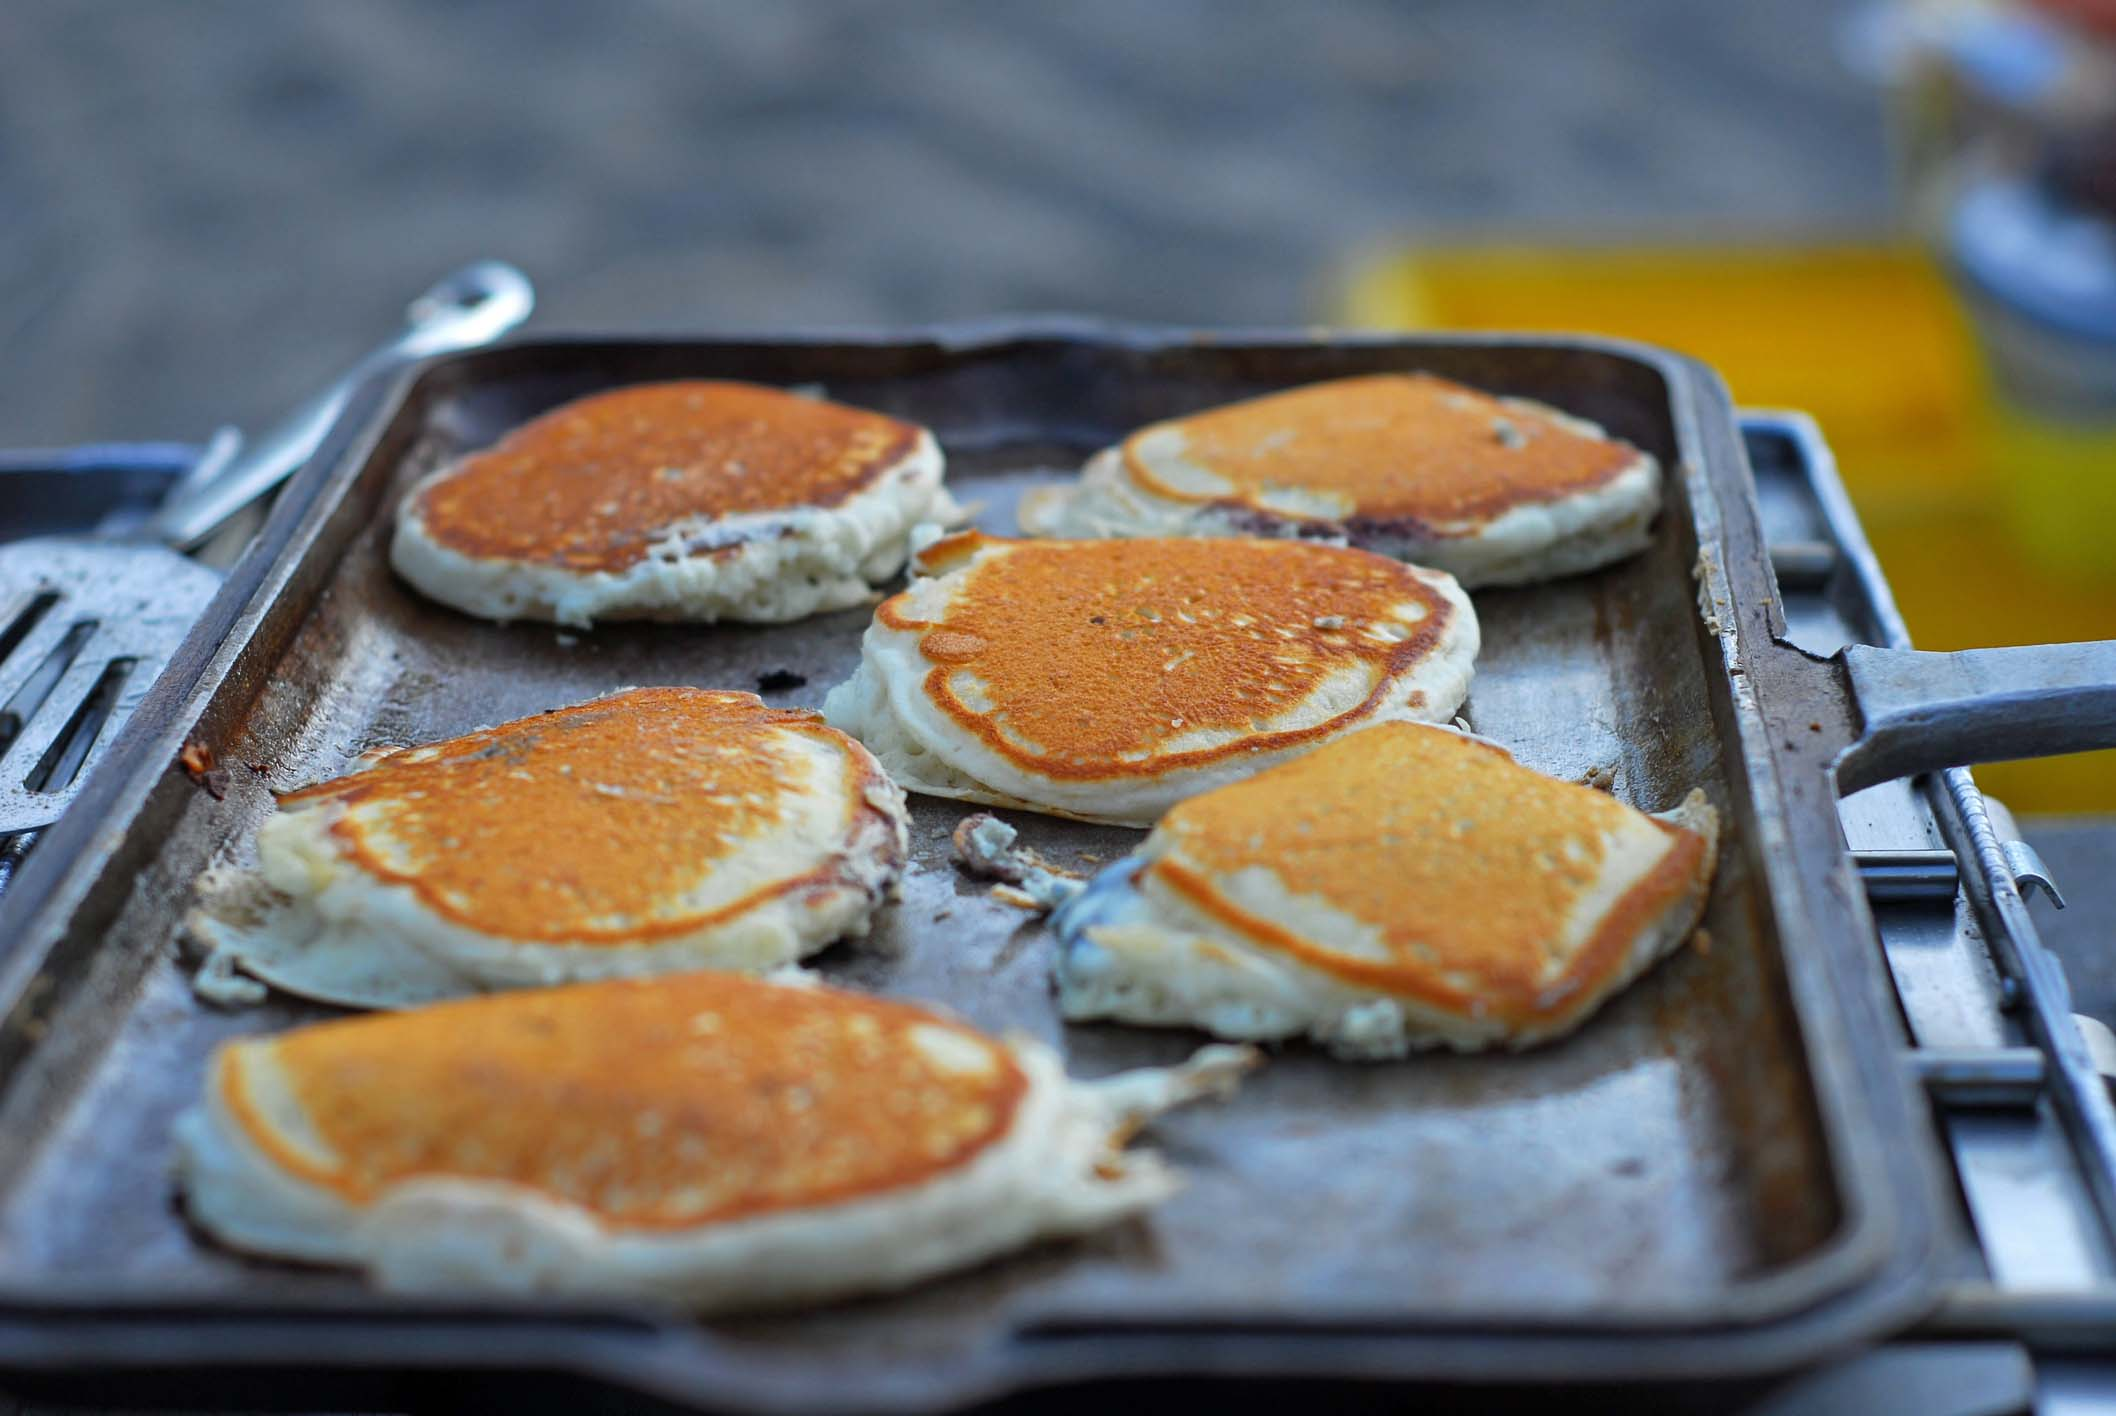 Six pancakes cooking on an outdoor grill.